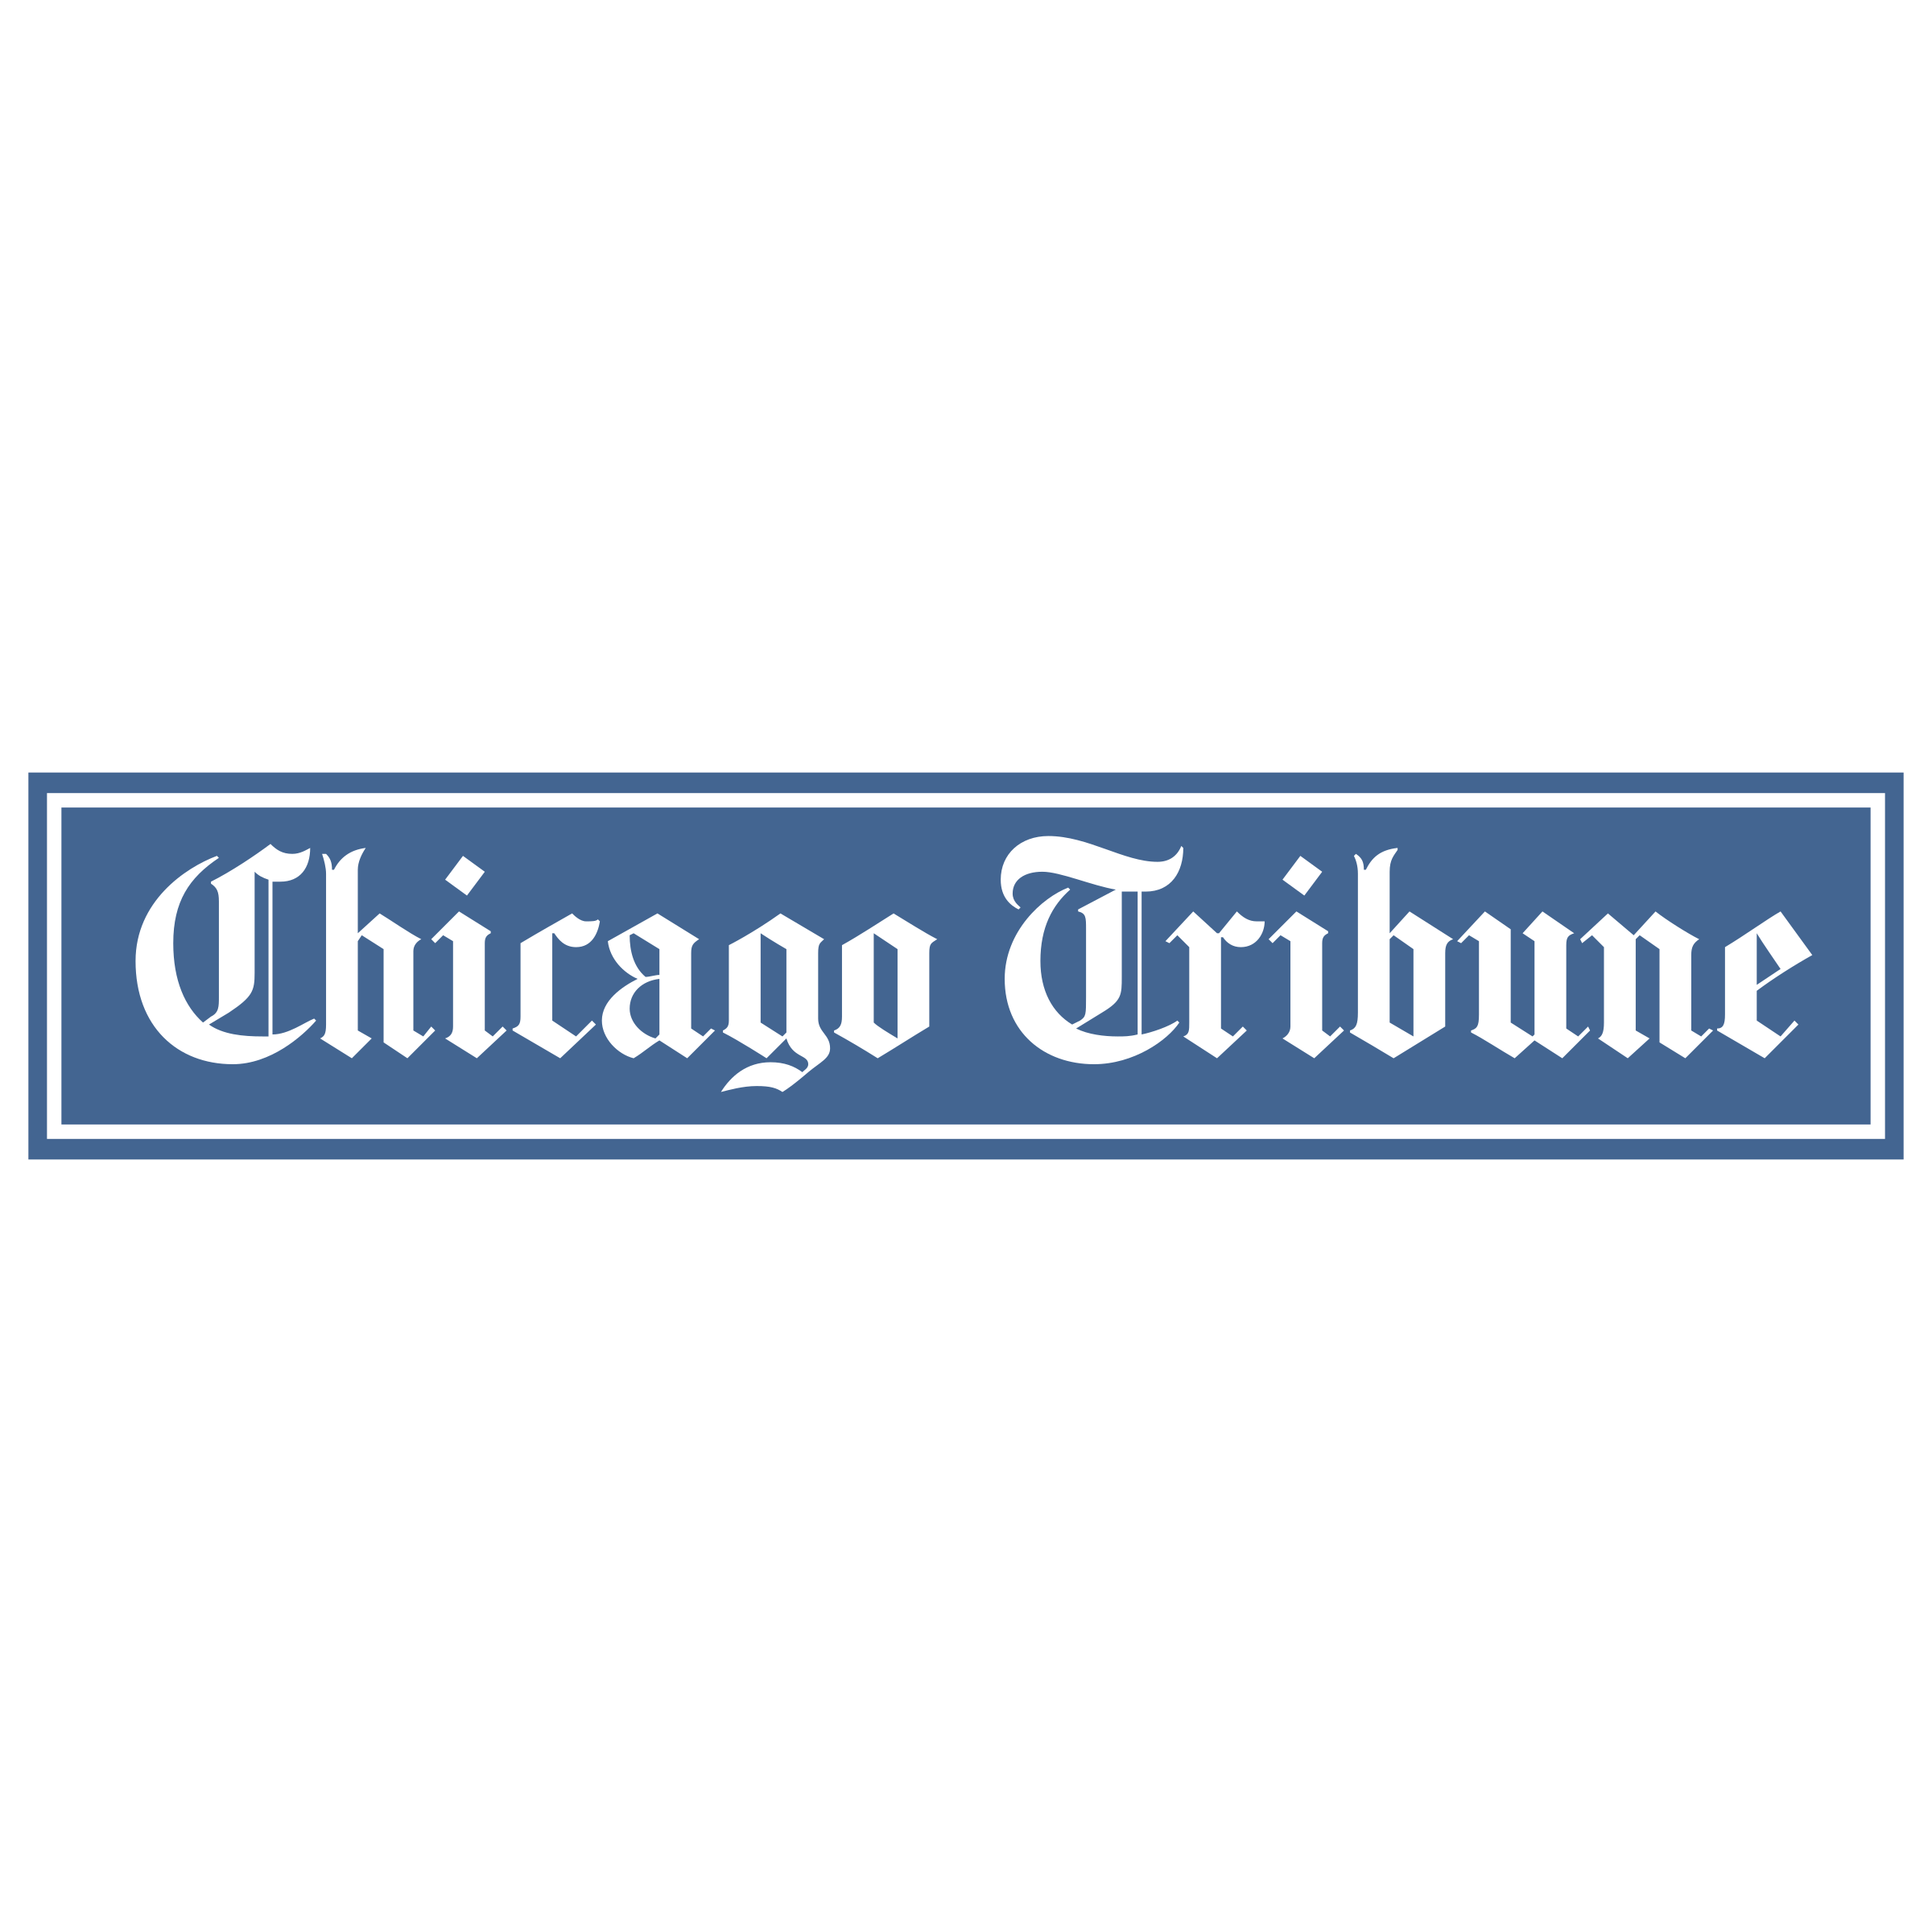 Chicago tribune logo png. Transparent svg vector freebie